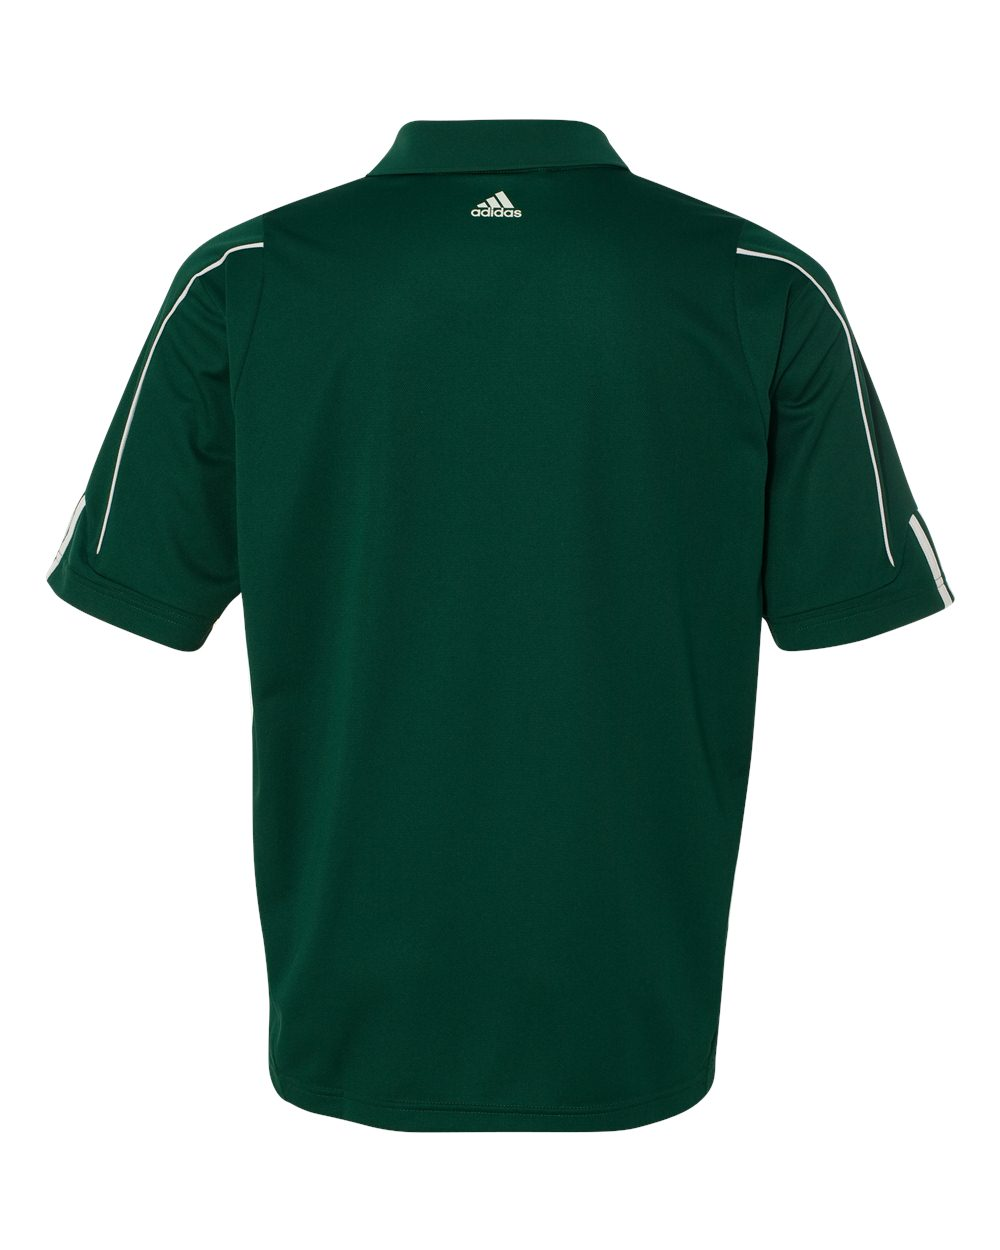 Adidas-Mens-Climalite-3-Stripes-Cuff-Sport-Shirt-A76-up-to-4XL miniature 10